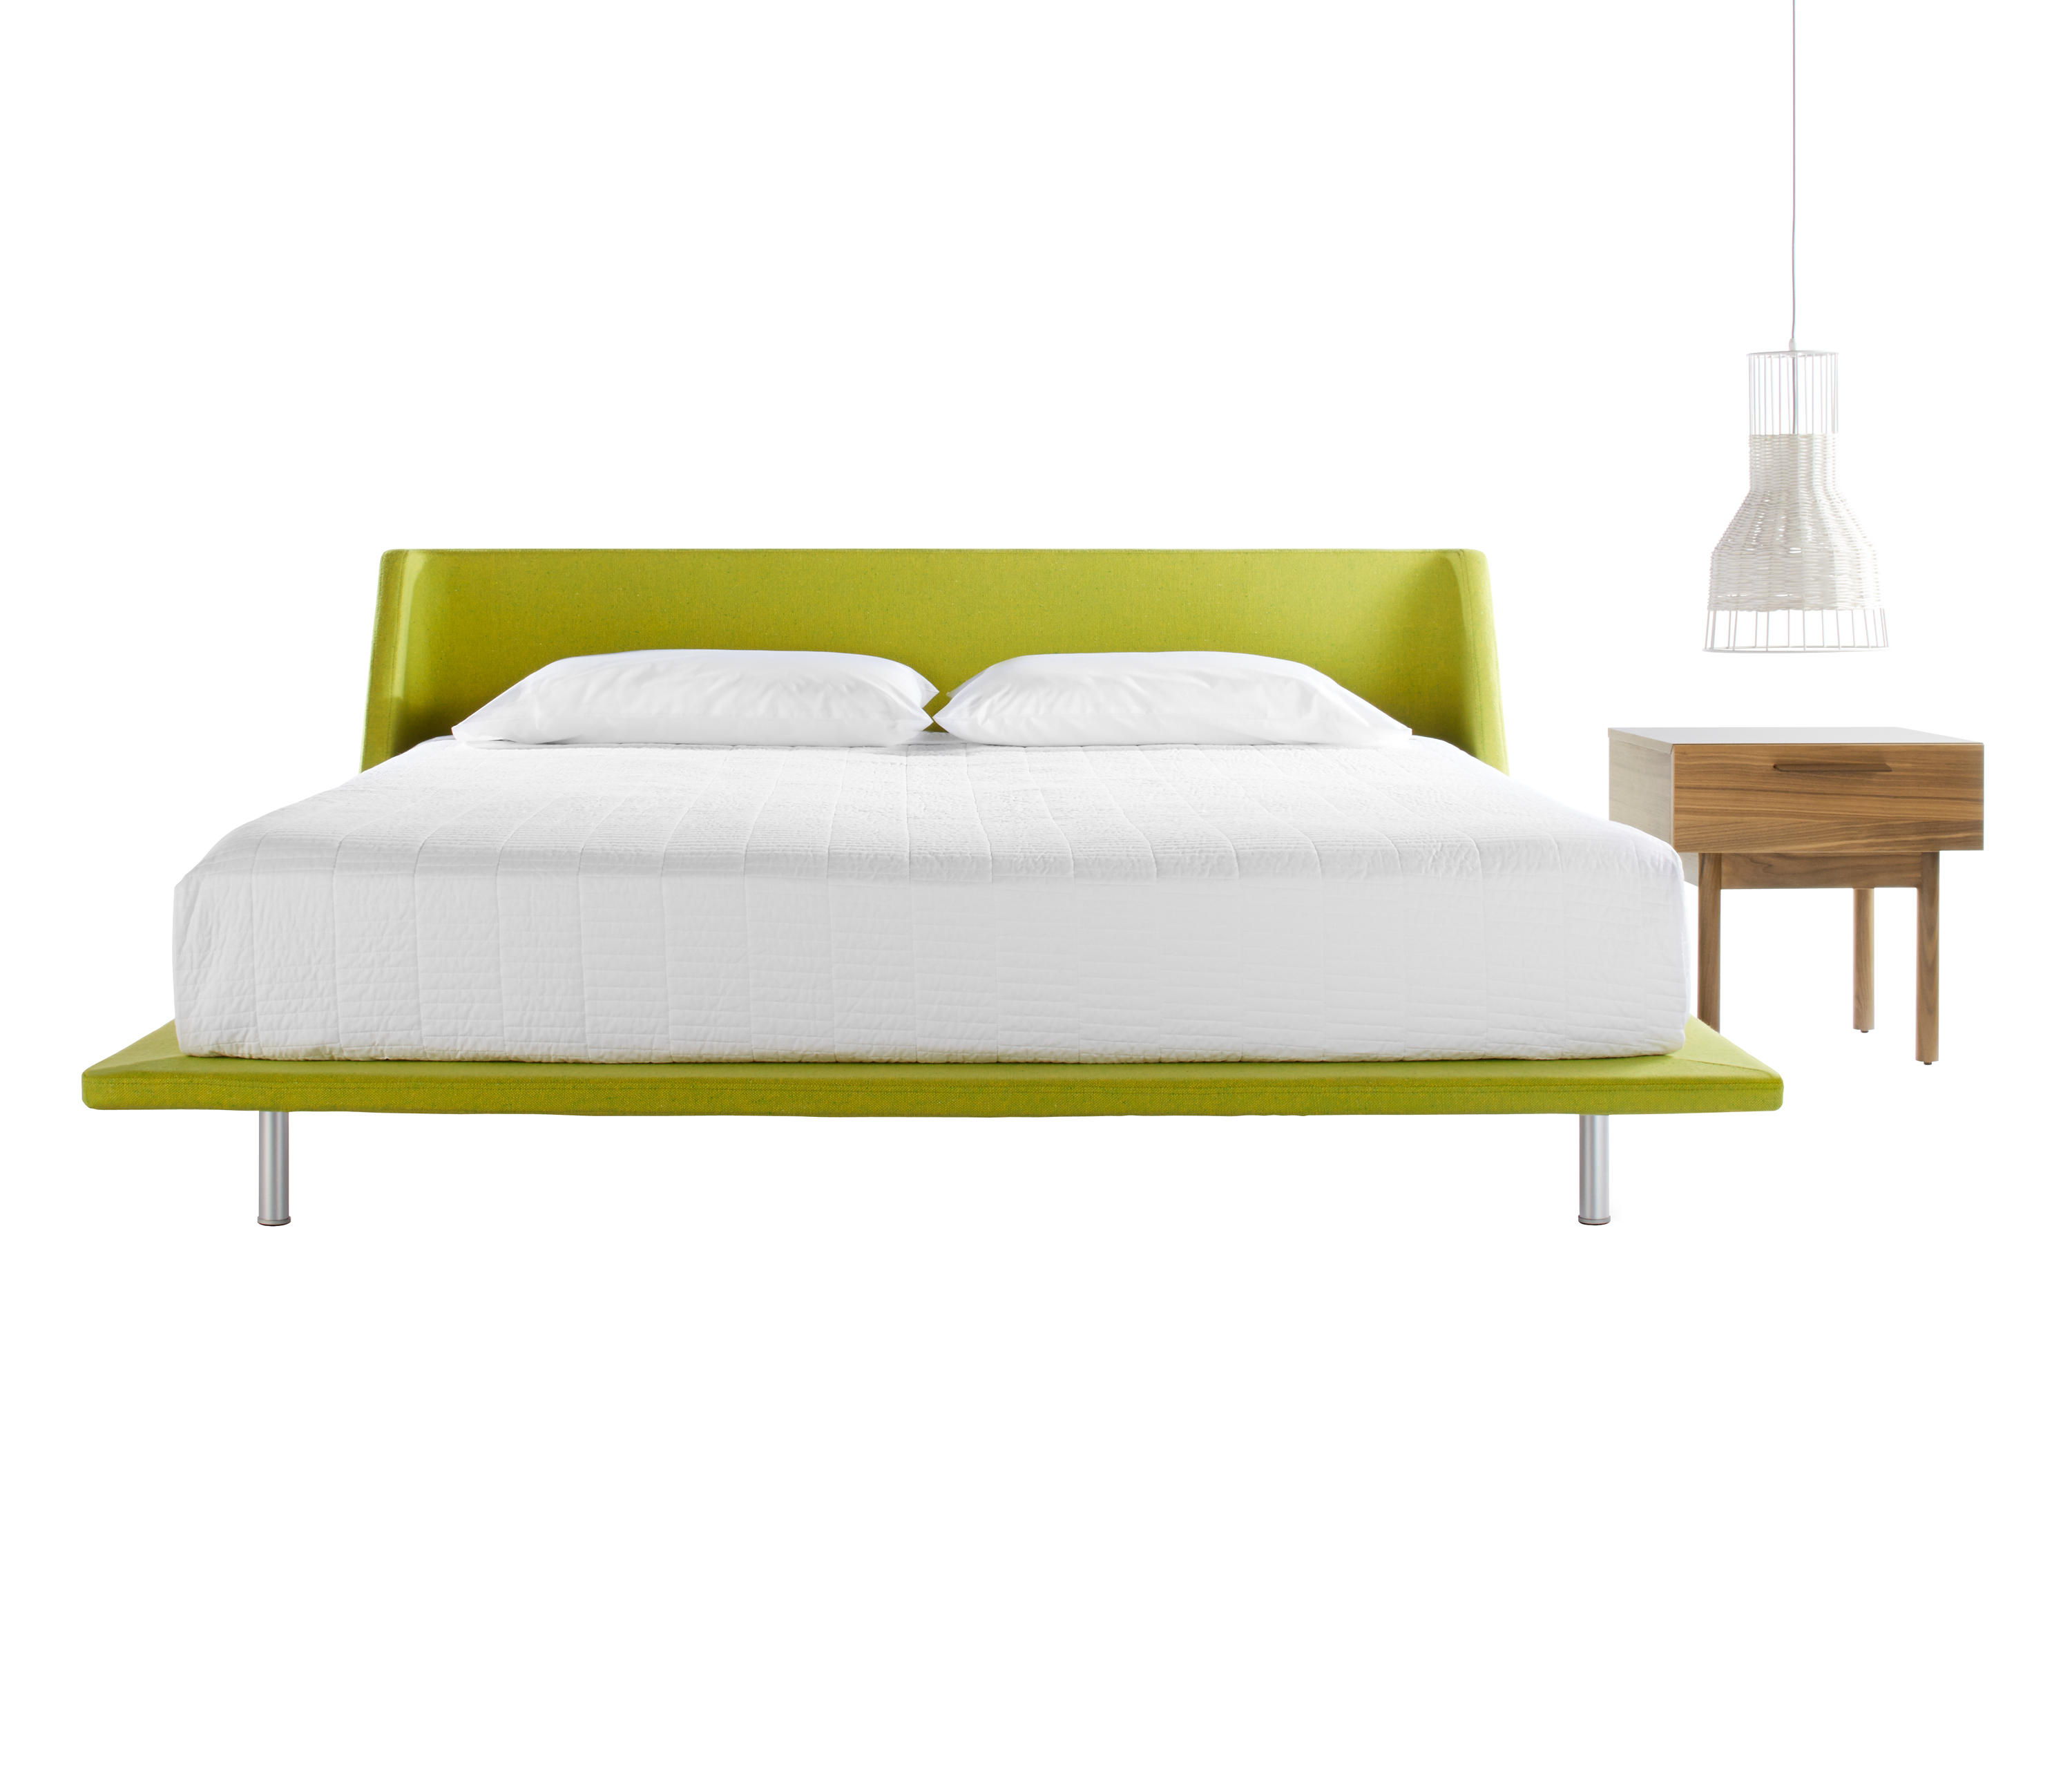 Nook Full Bed Beds From Blu Dot Architonic